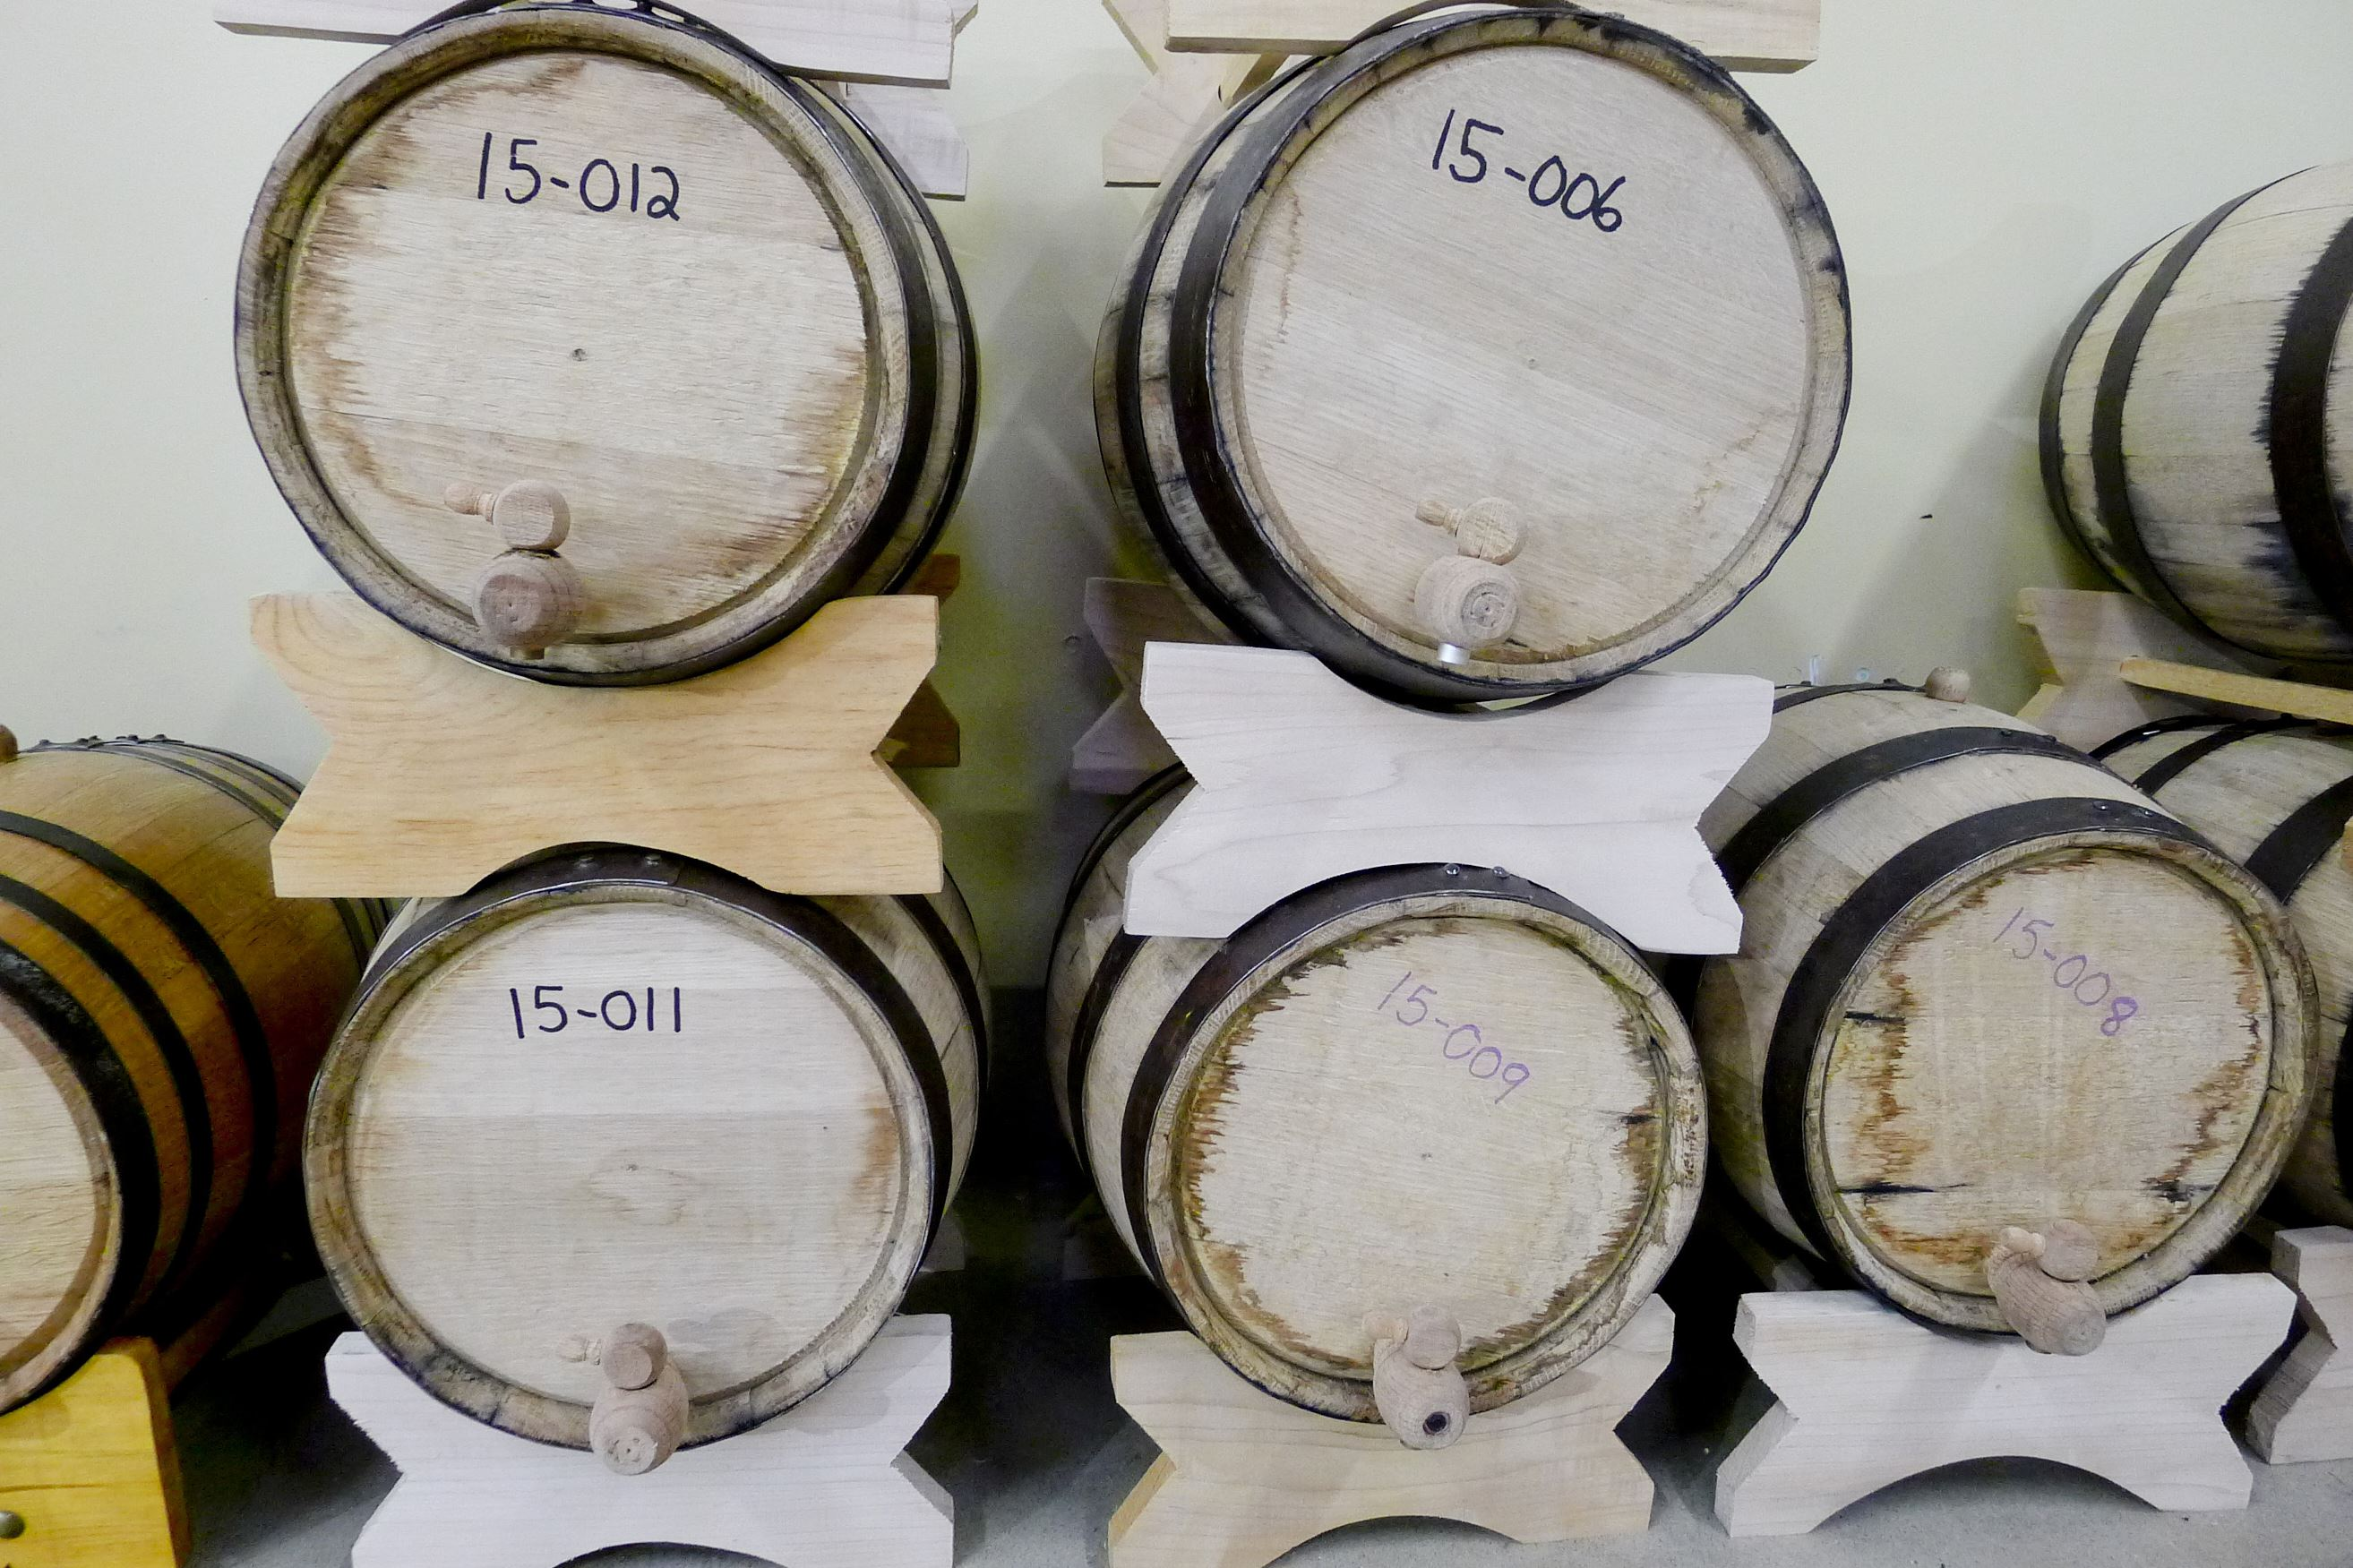 20150715bbSpirits04-3 Whiskey and other spirits aging in barrels at Disobedient Spirits in Homer City.